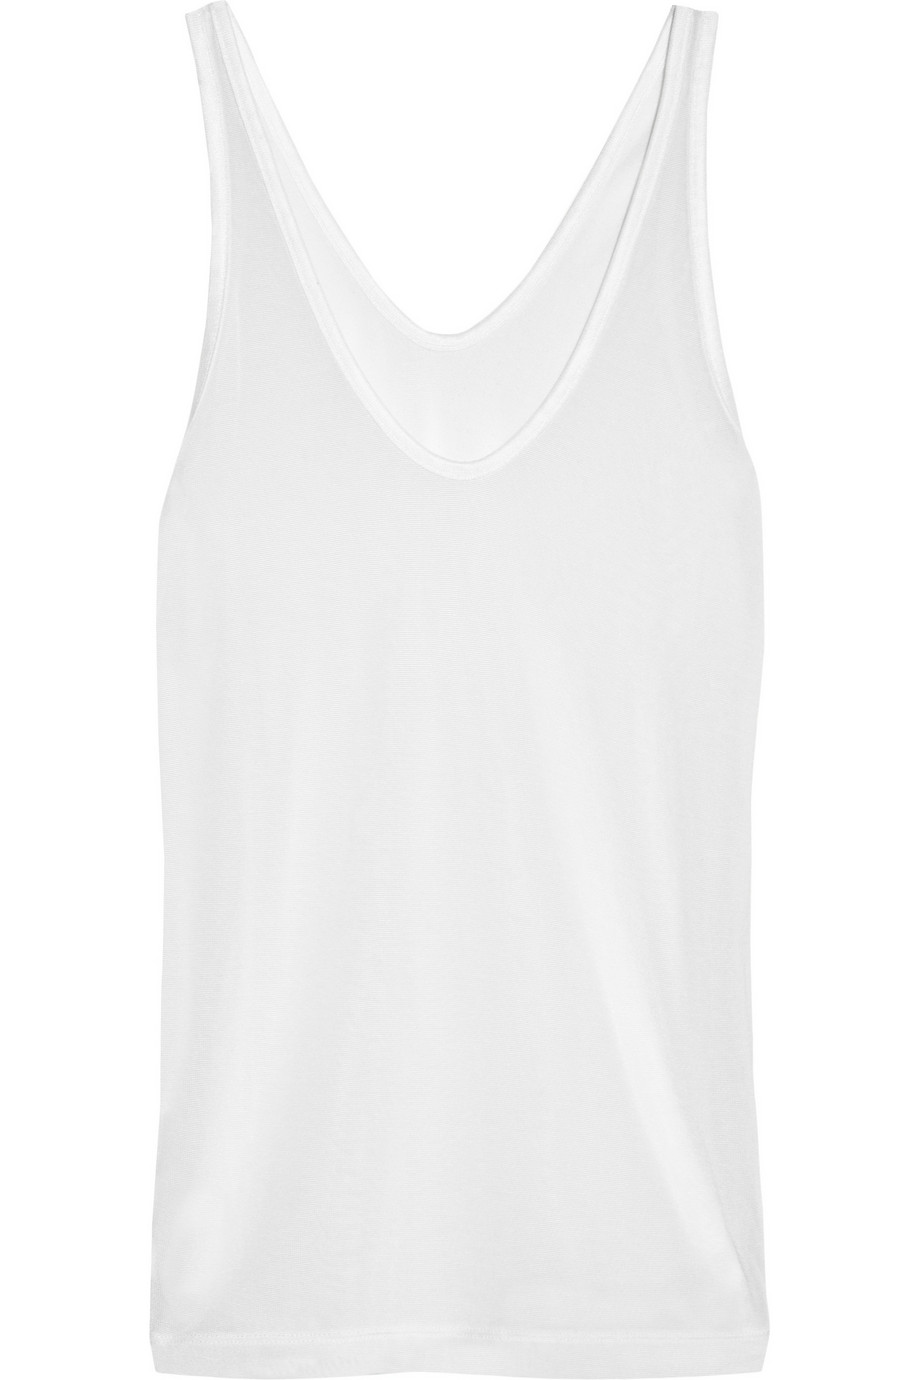 T by Alexander Wang available at theoutnet.com